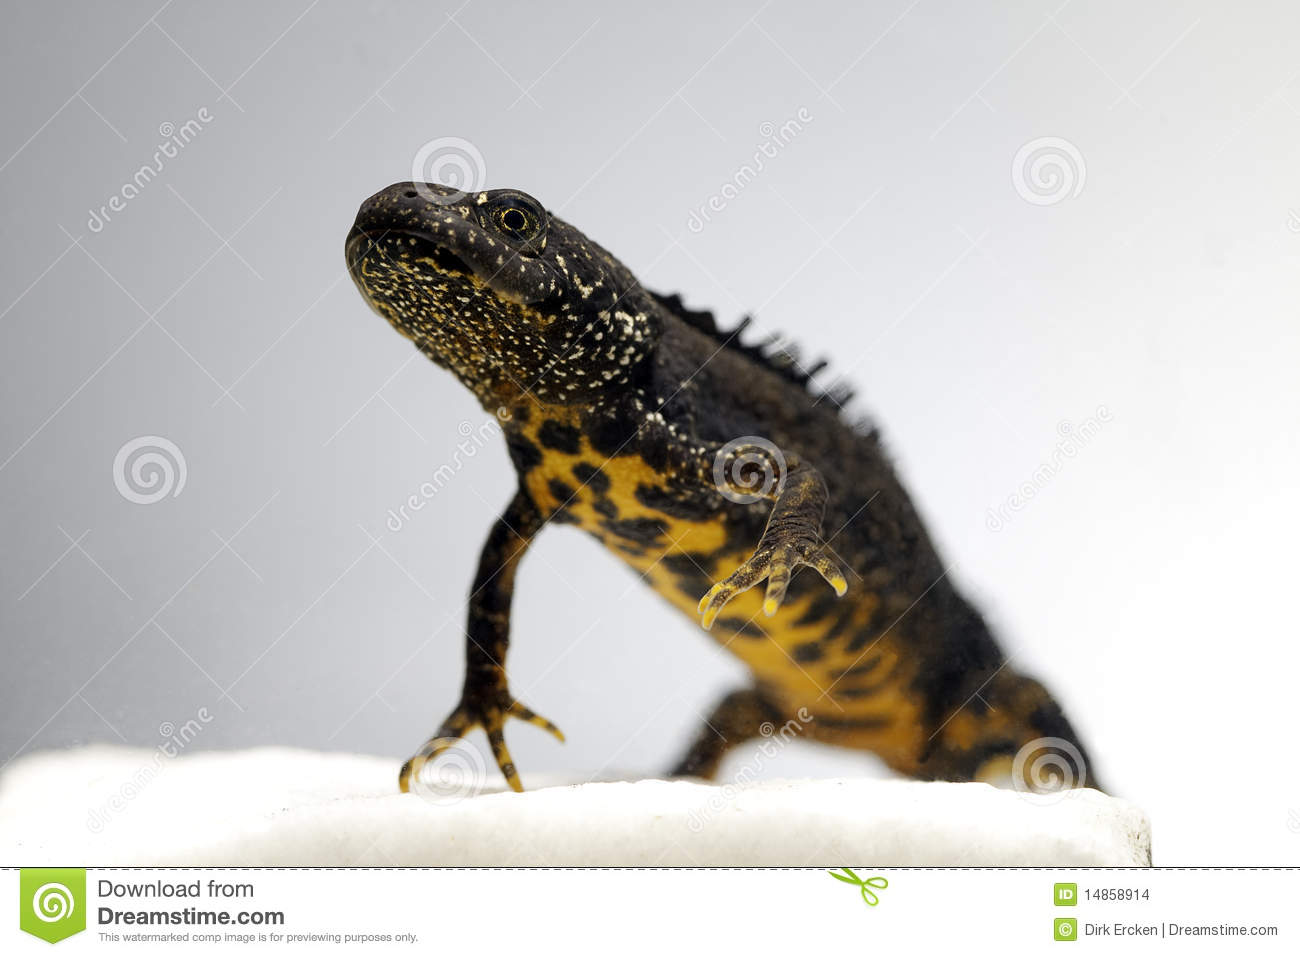 Male great crested newt adult endangered amphibian